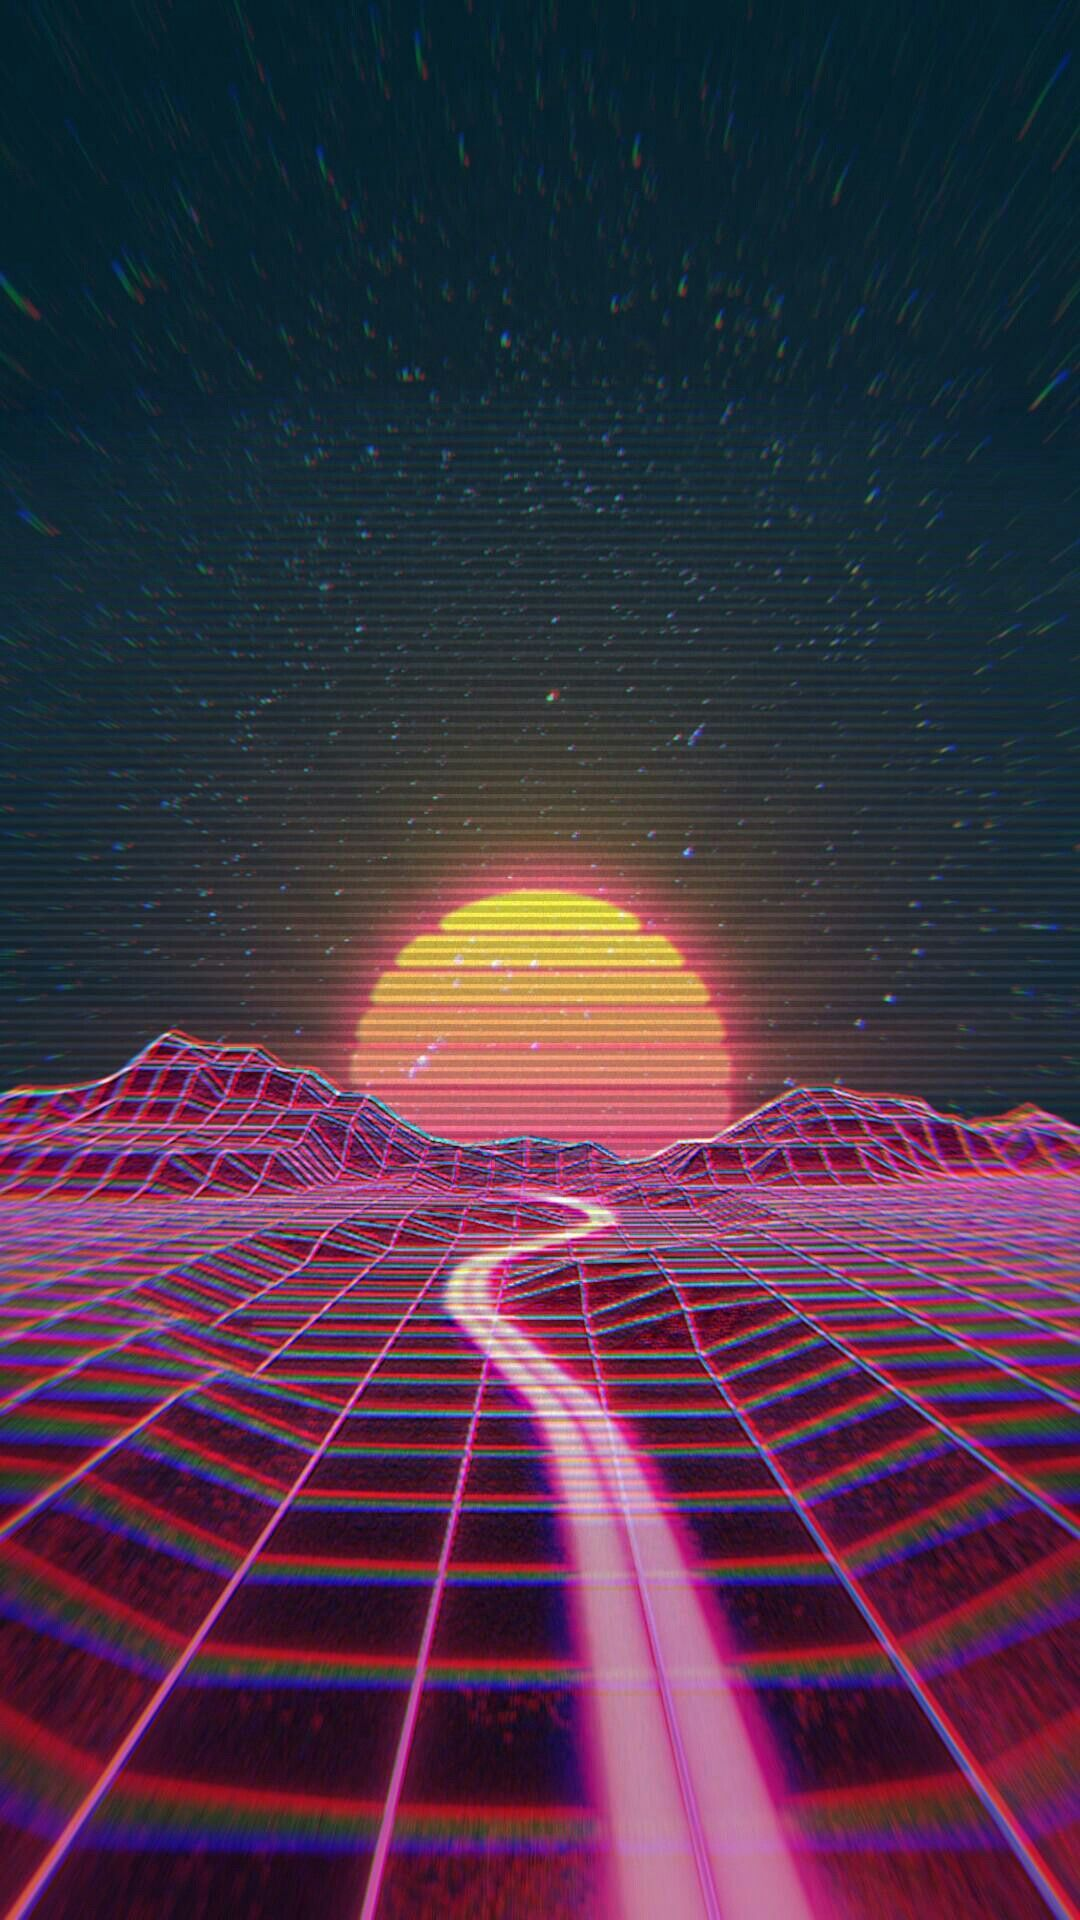 Glitch Aesthetic Wallpapers Top Free Glitch Aesthetic